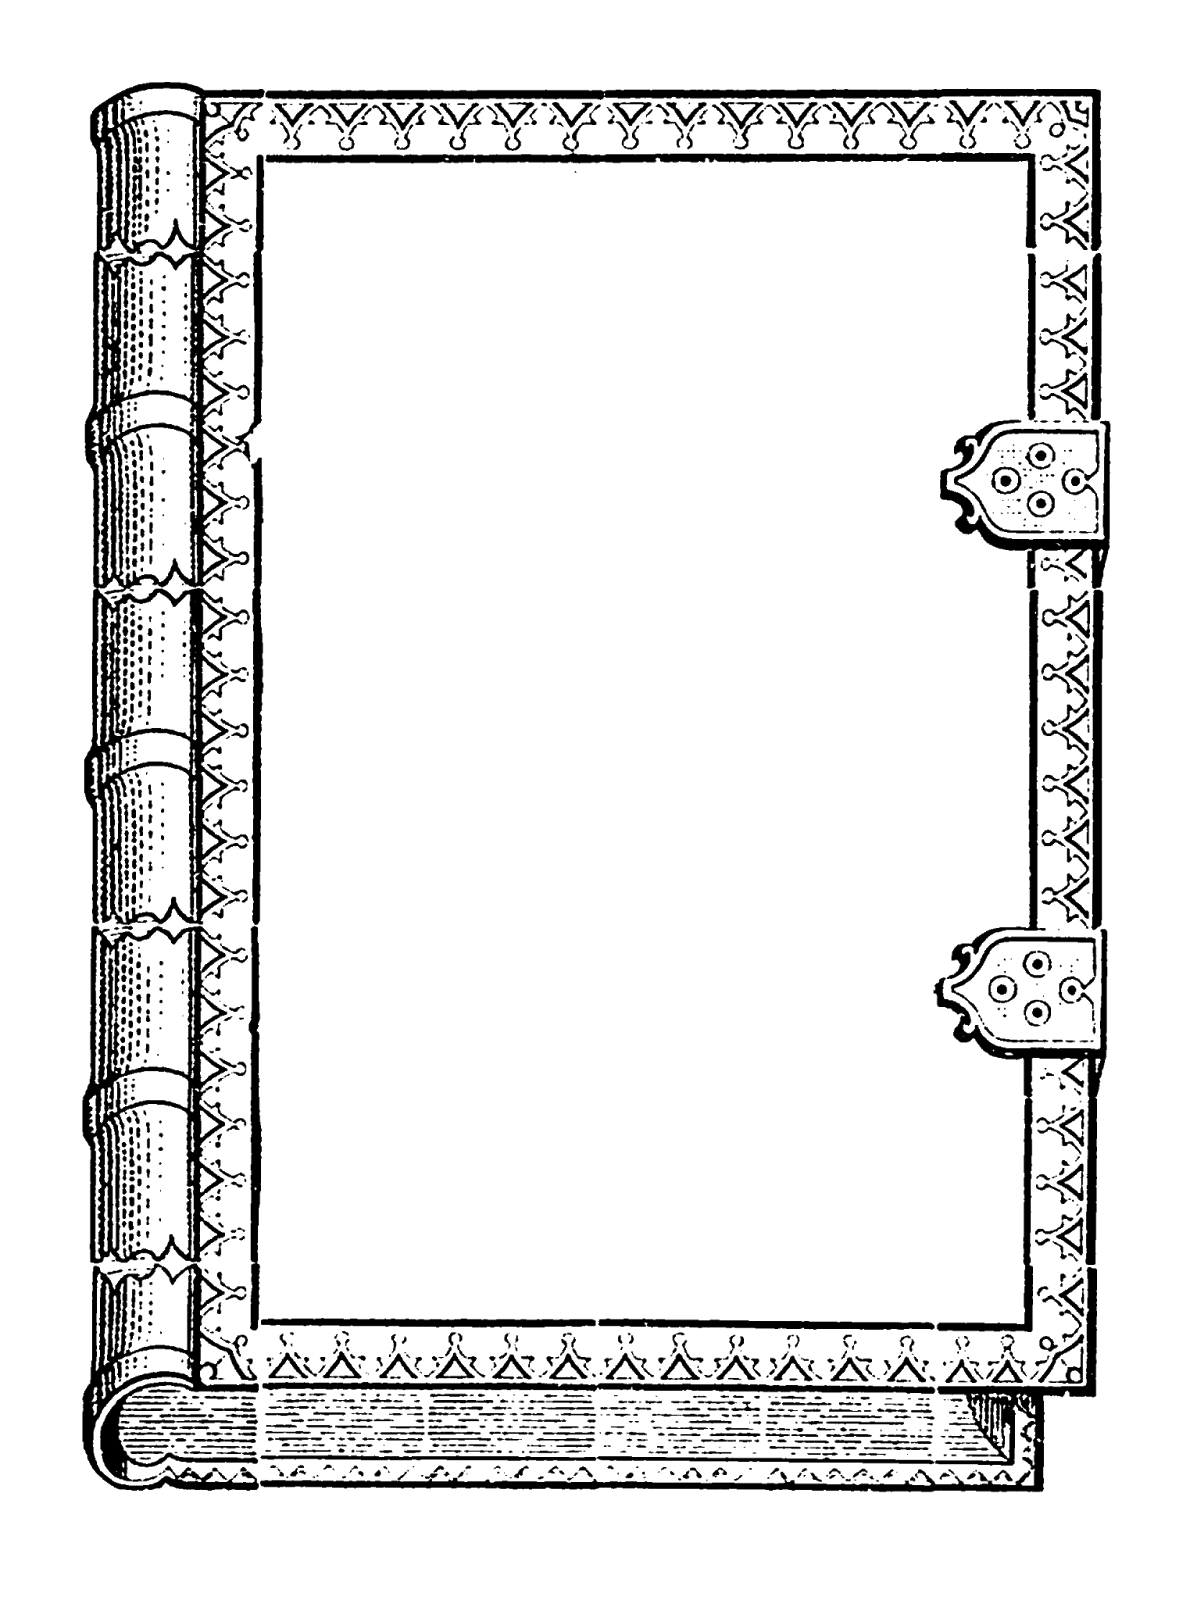 Book frame clipart png black and white download Digital Stamp Design: Commercial Use Old Book Design Digital Frames ... png black and white download